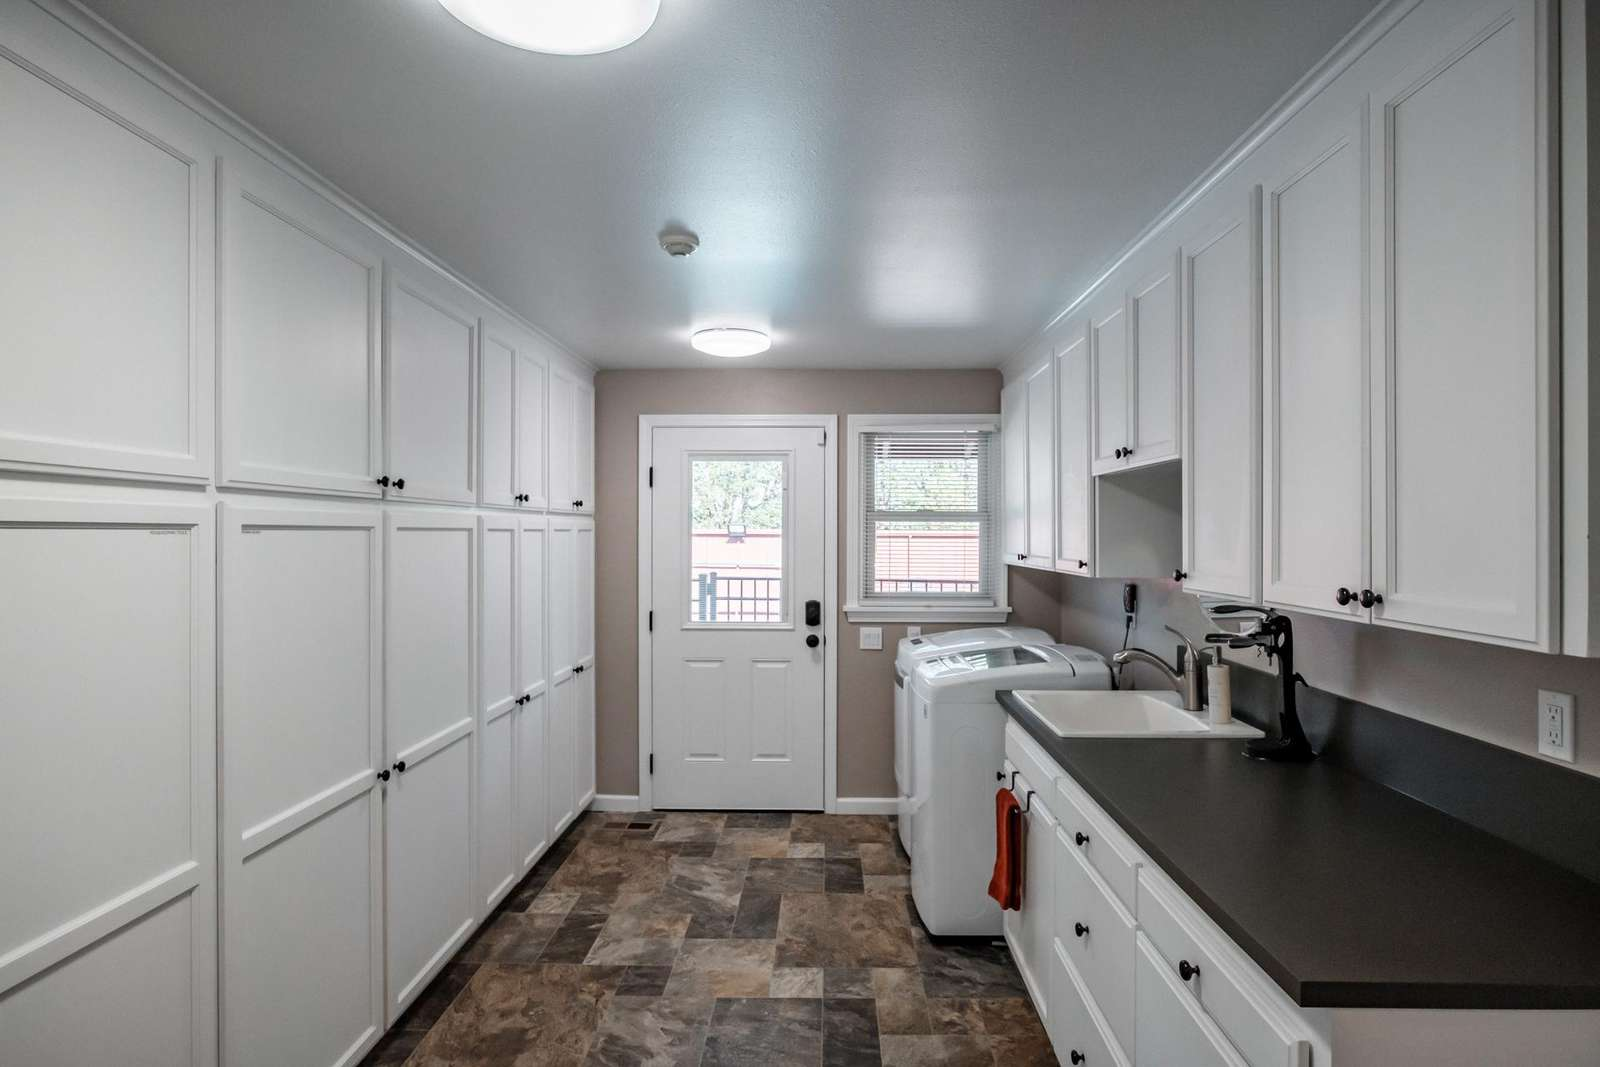 Utility Room with washer, dryer, utility sink and storage.